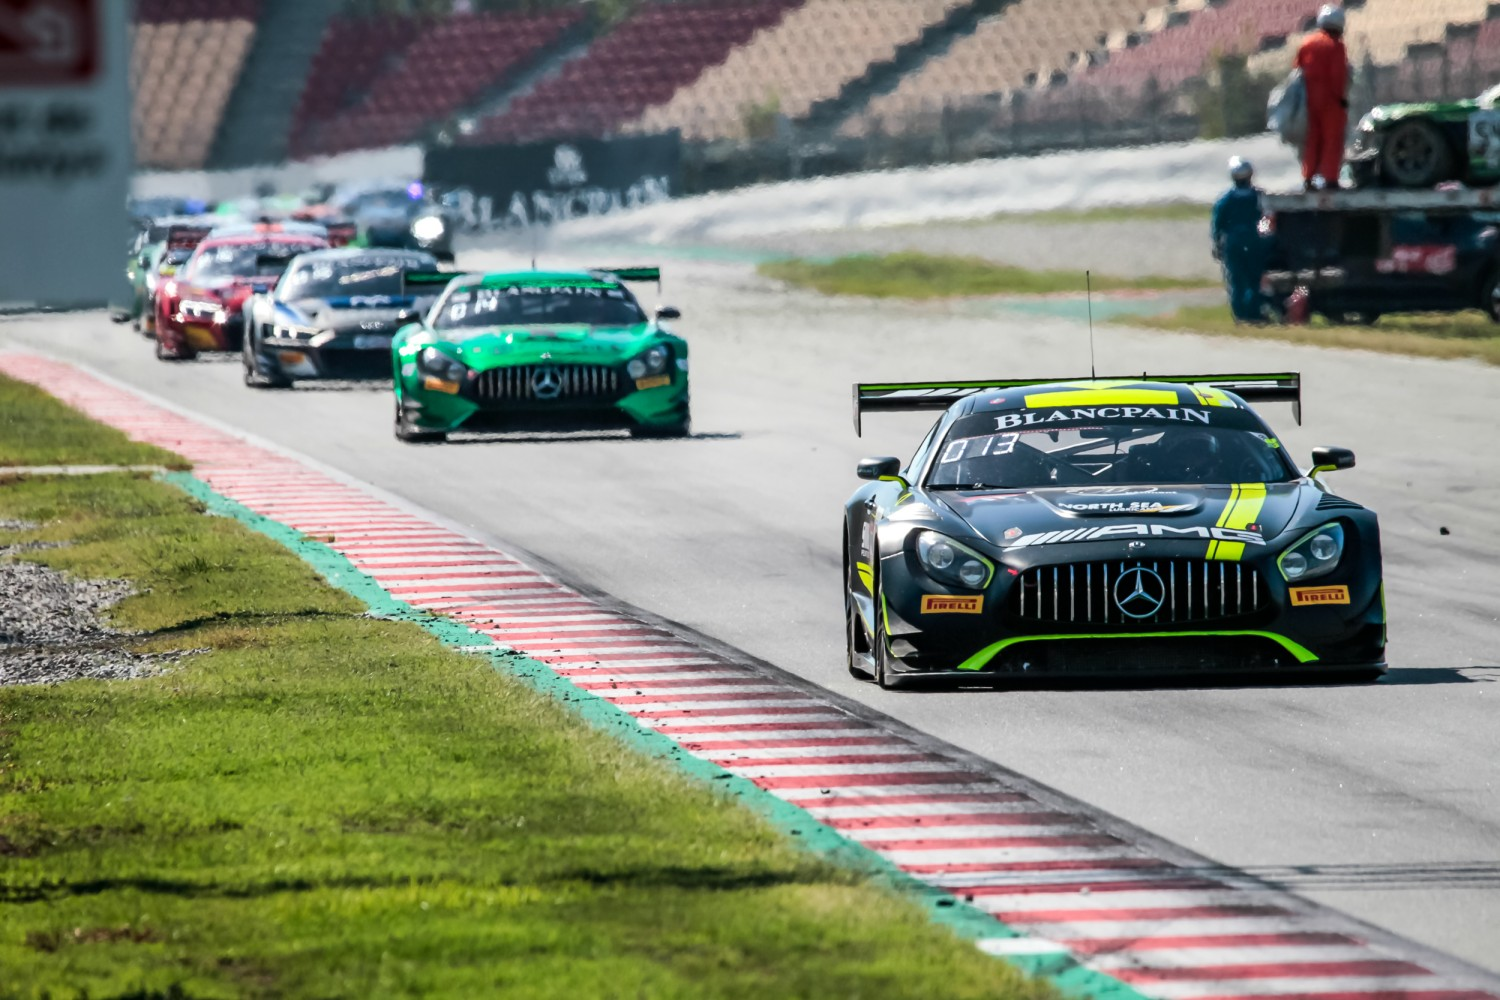 #43 Strakka Racing GBR Mercedes-AMG GT3 Romain Monti FRA Max Koebolt NDL Esteban Muth BEL Silver Cup, Race  | SRO / Patrick Hecq Photography